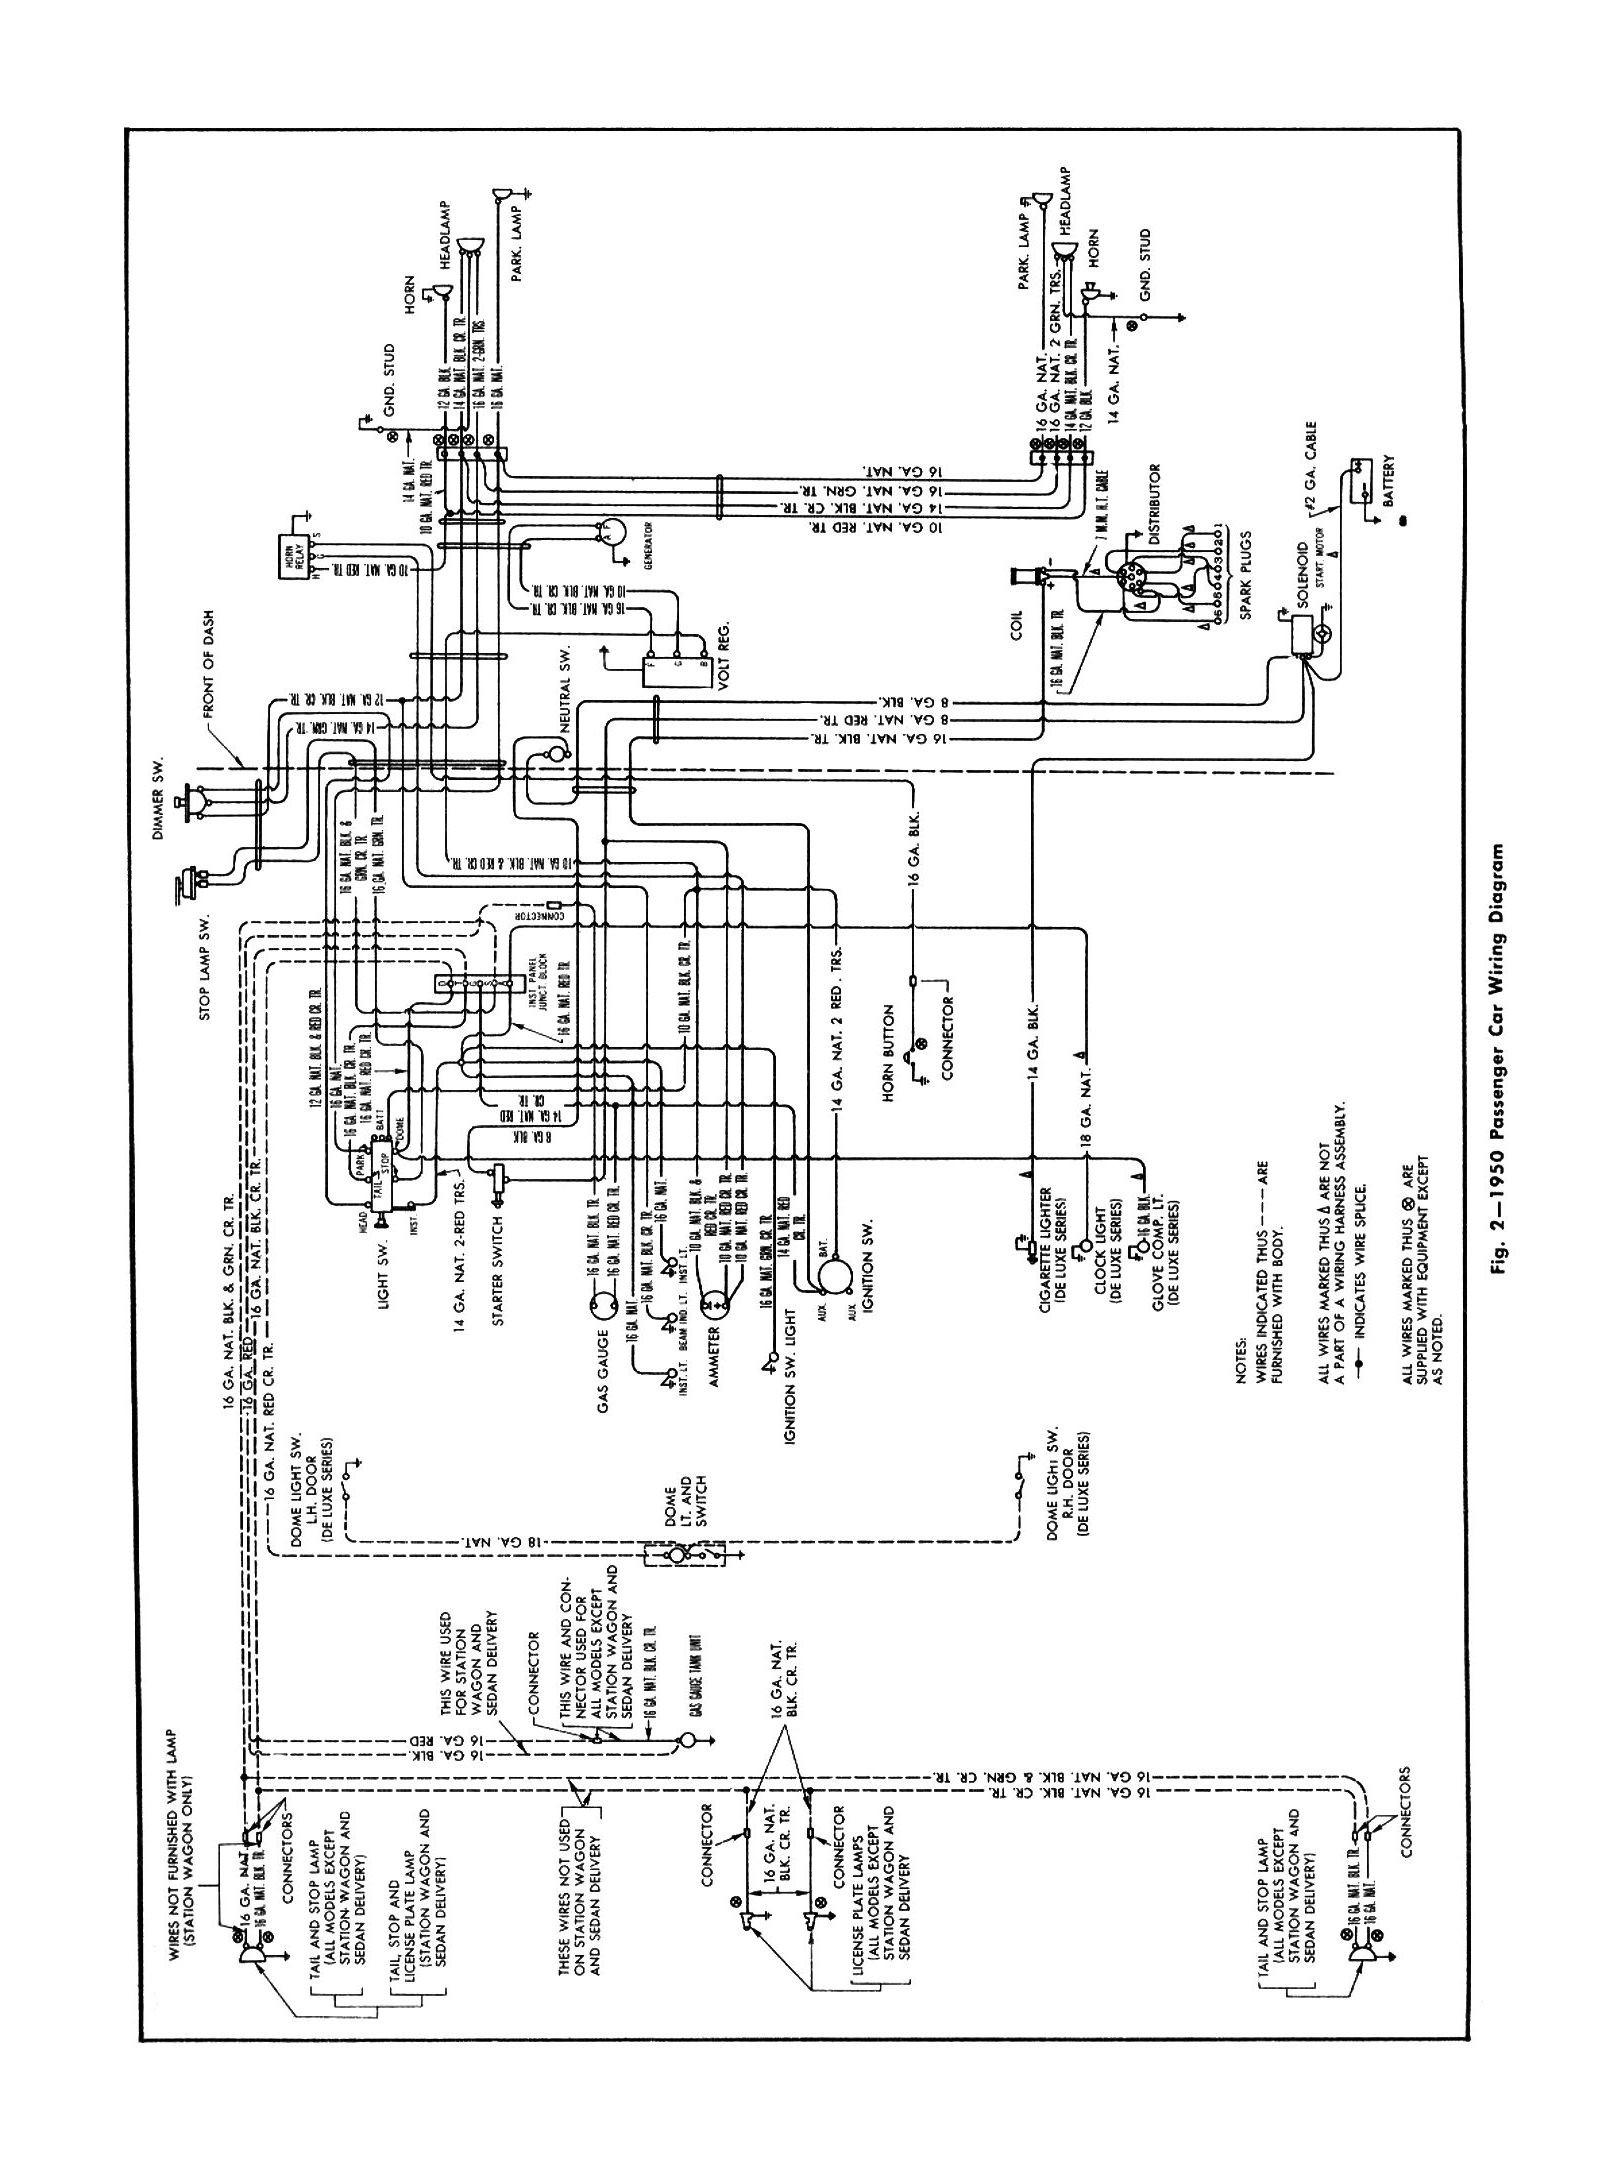 Chevy Wiring Diagrams Howell Wiring Harness 1949 Pontiac Wiring Harness